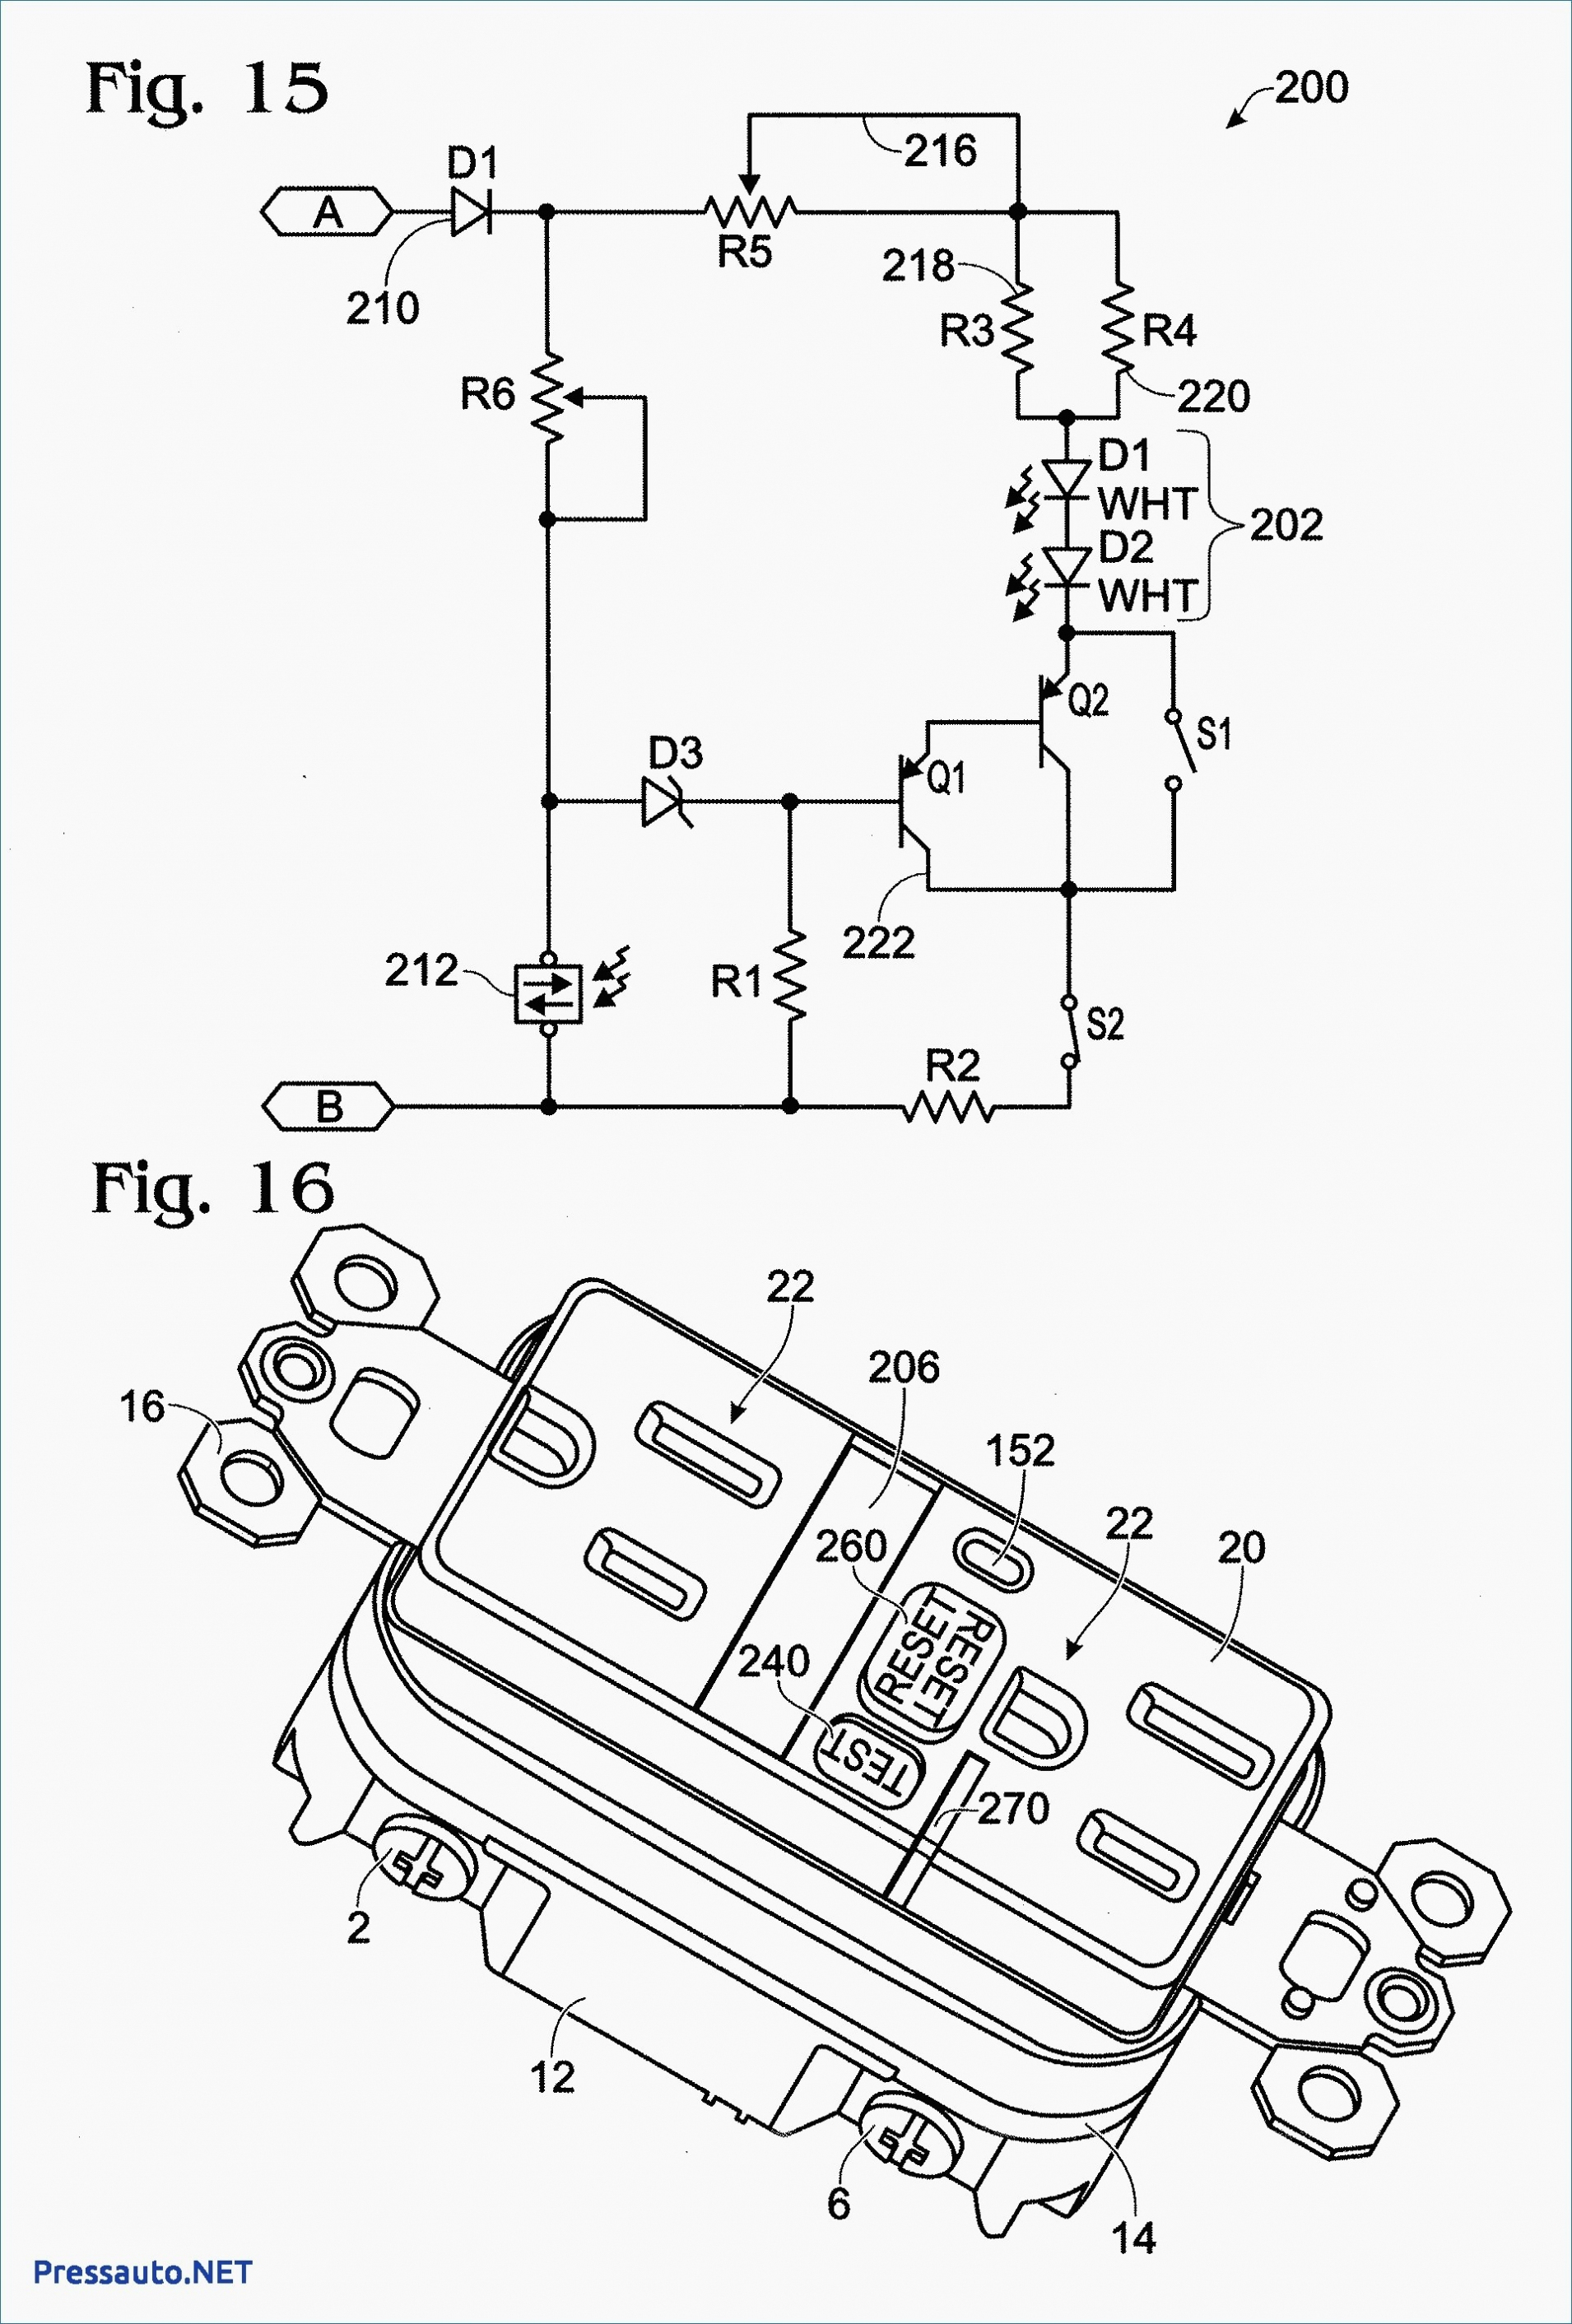 L14 30 Wiring Diagram – 4 Prong Twist Lock Plug Wiring Diagram Fresh - 30 Amp Twist Lock Plug Wiring Diagram